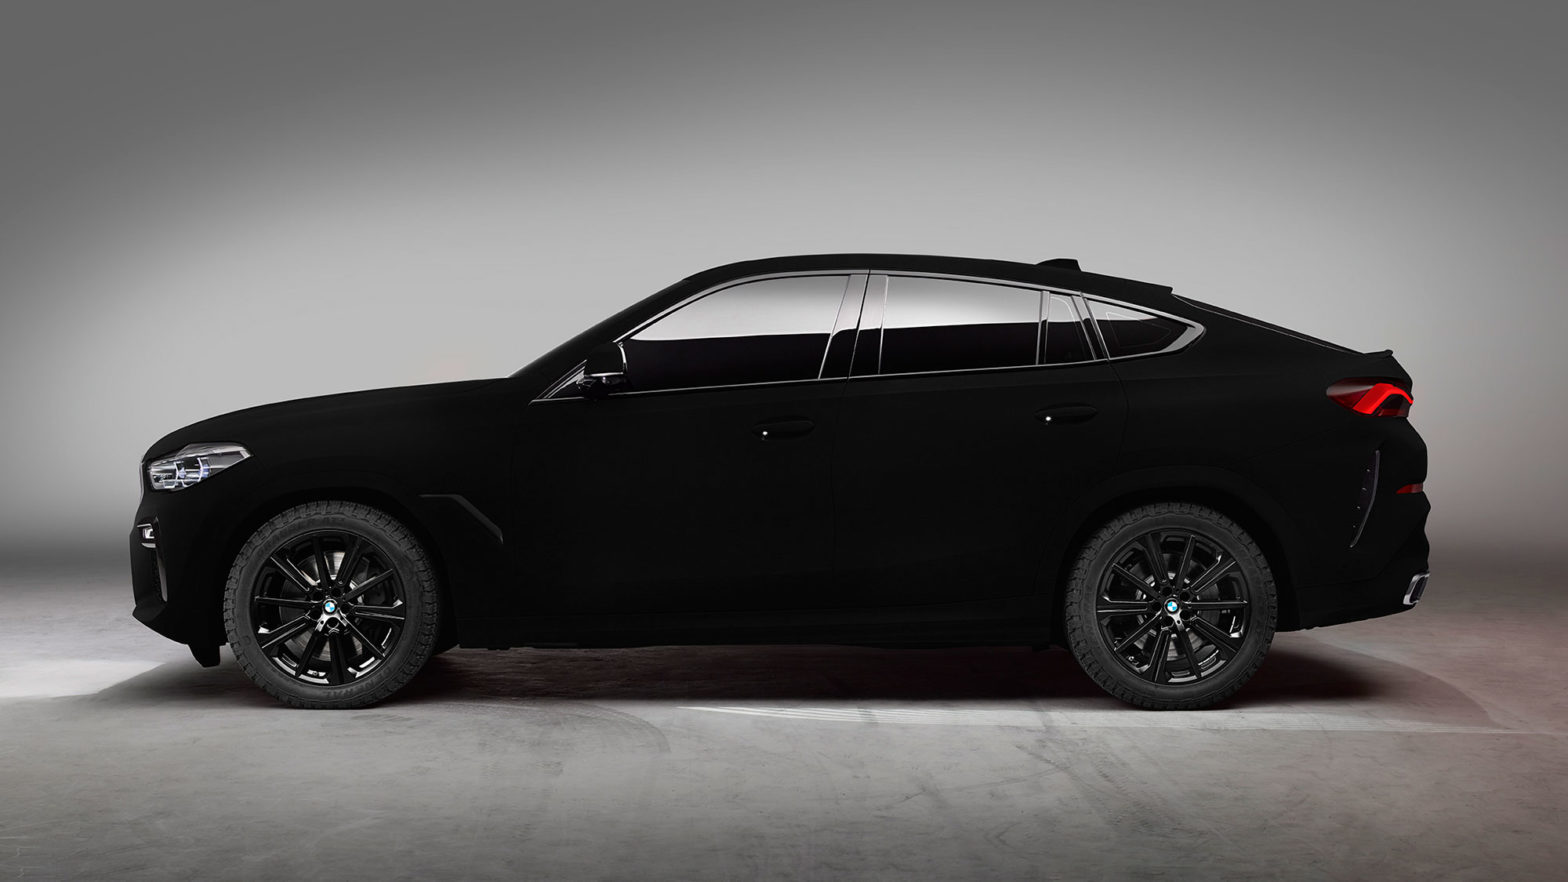 One-off BMW X6 SUV In Vantablack